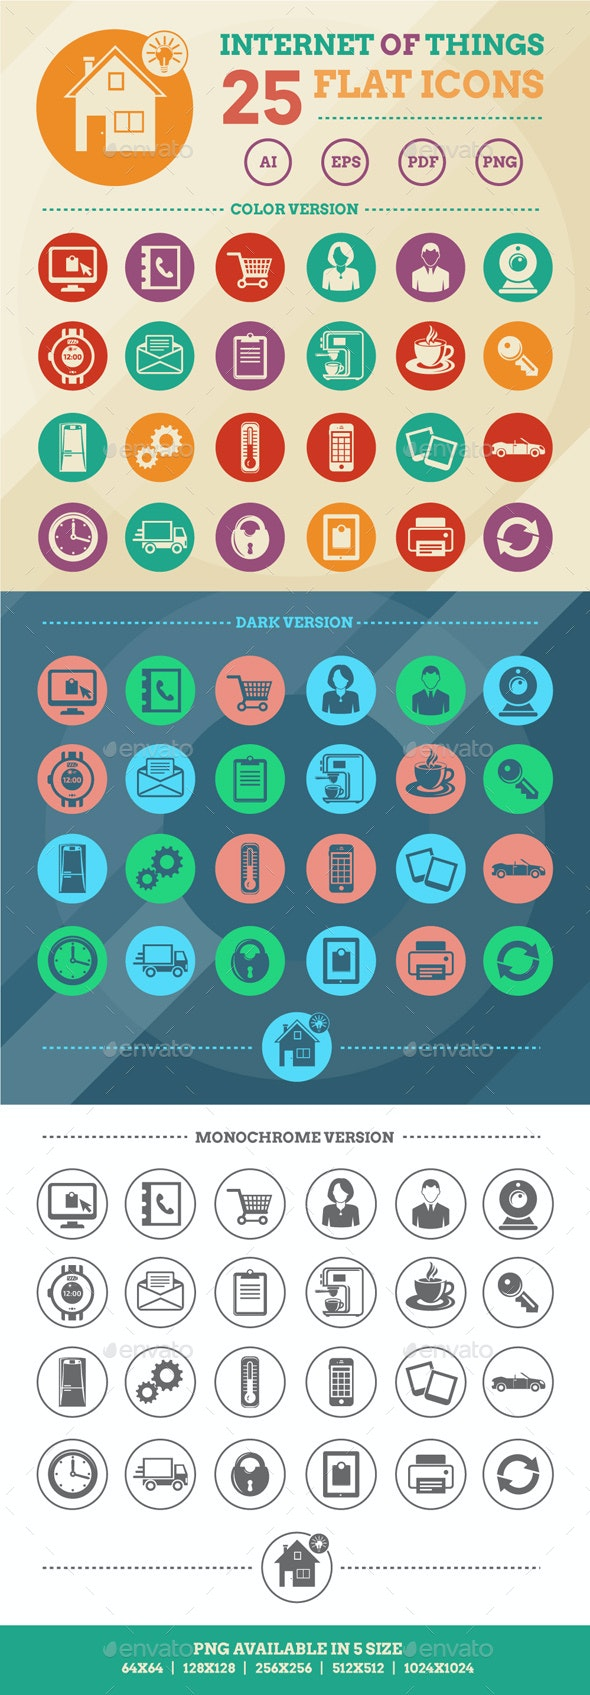 Internet Of Things And Smart Home Icons - Technology Icons